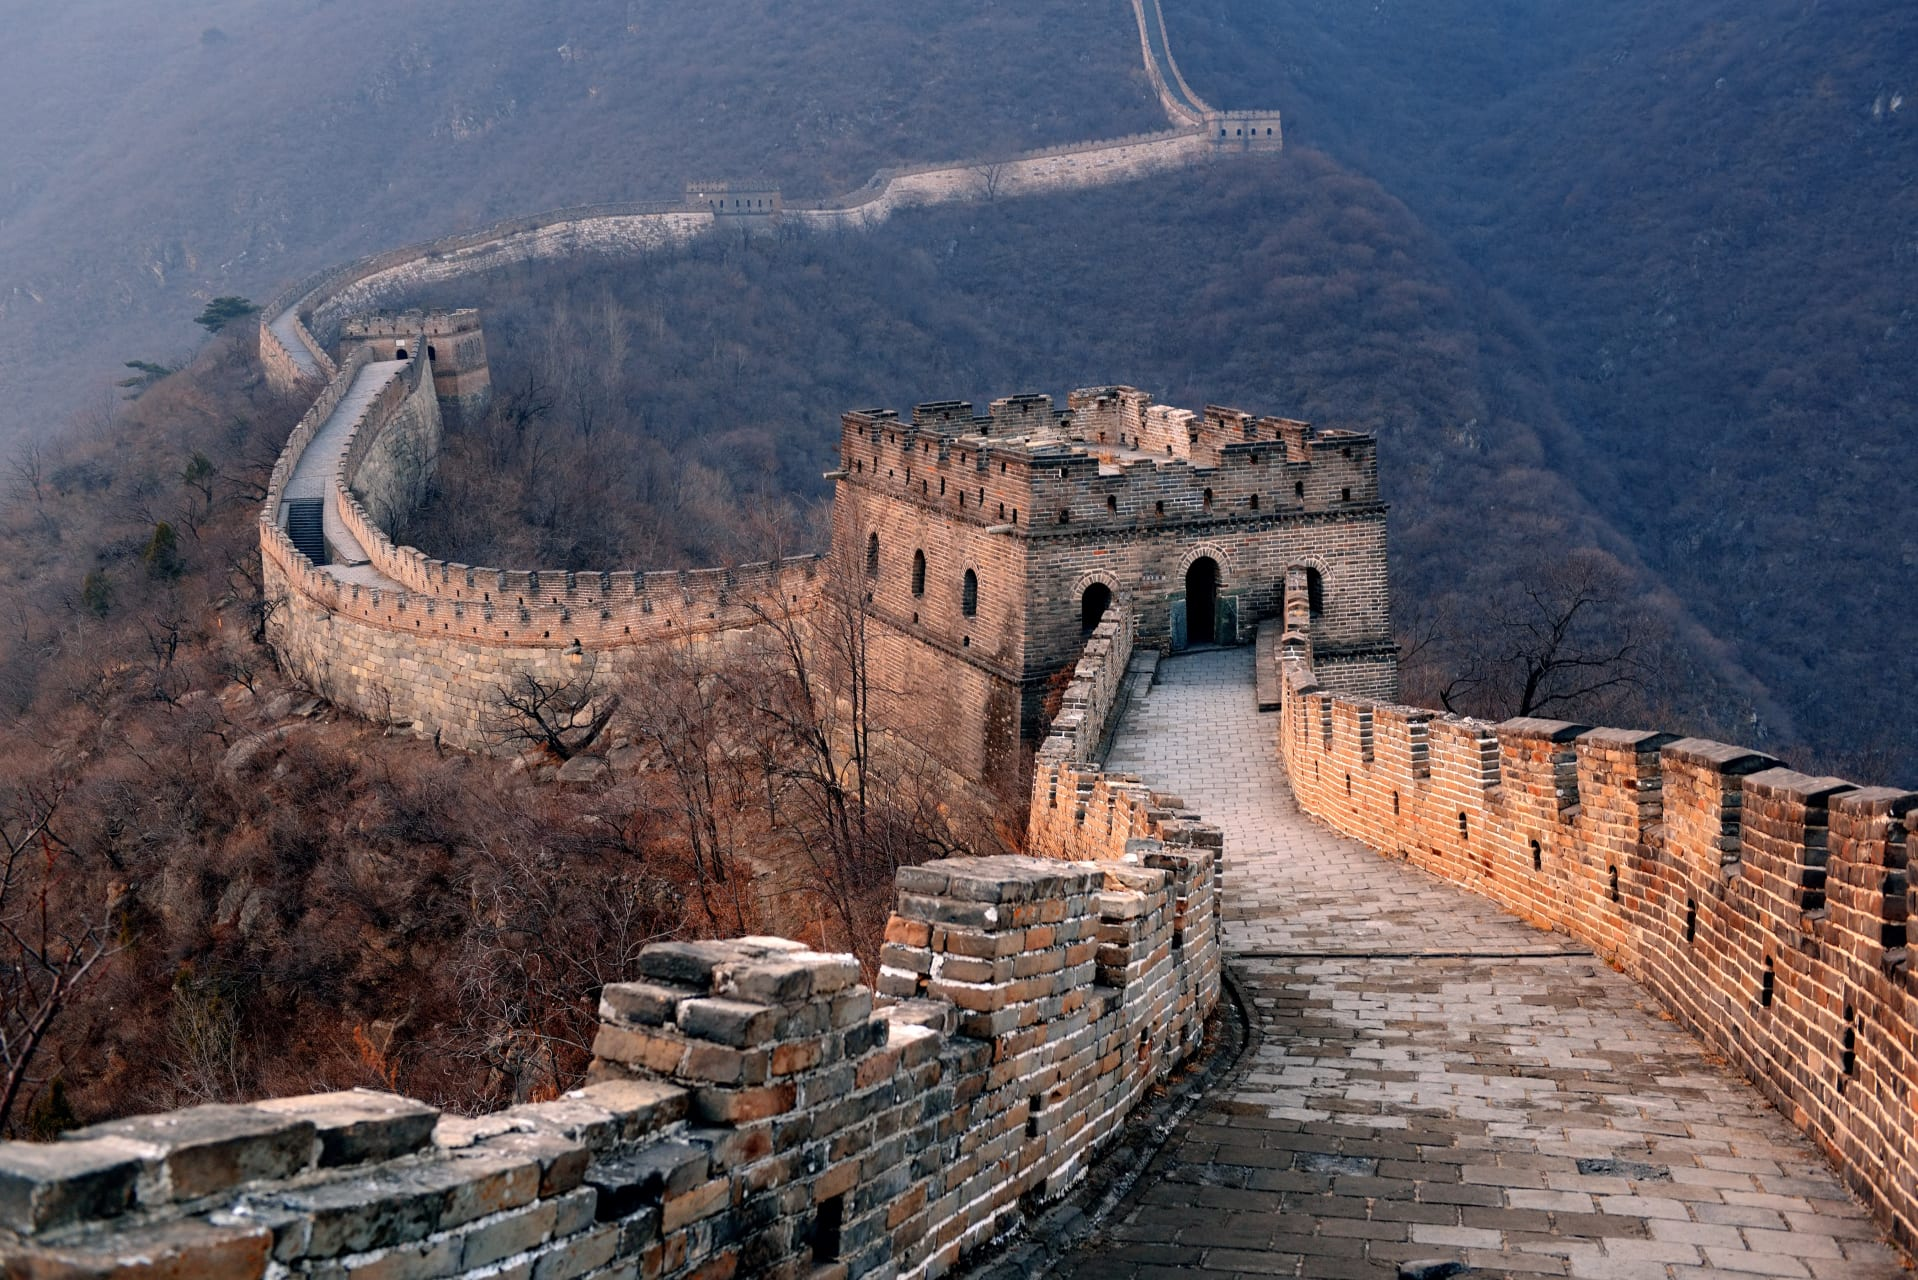 Beijing - Mutianyu China Great Wall: The Best Section Part 2 (Walk from Tower 1 to Tower 6 with Toboggan Ride Down)